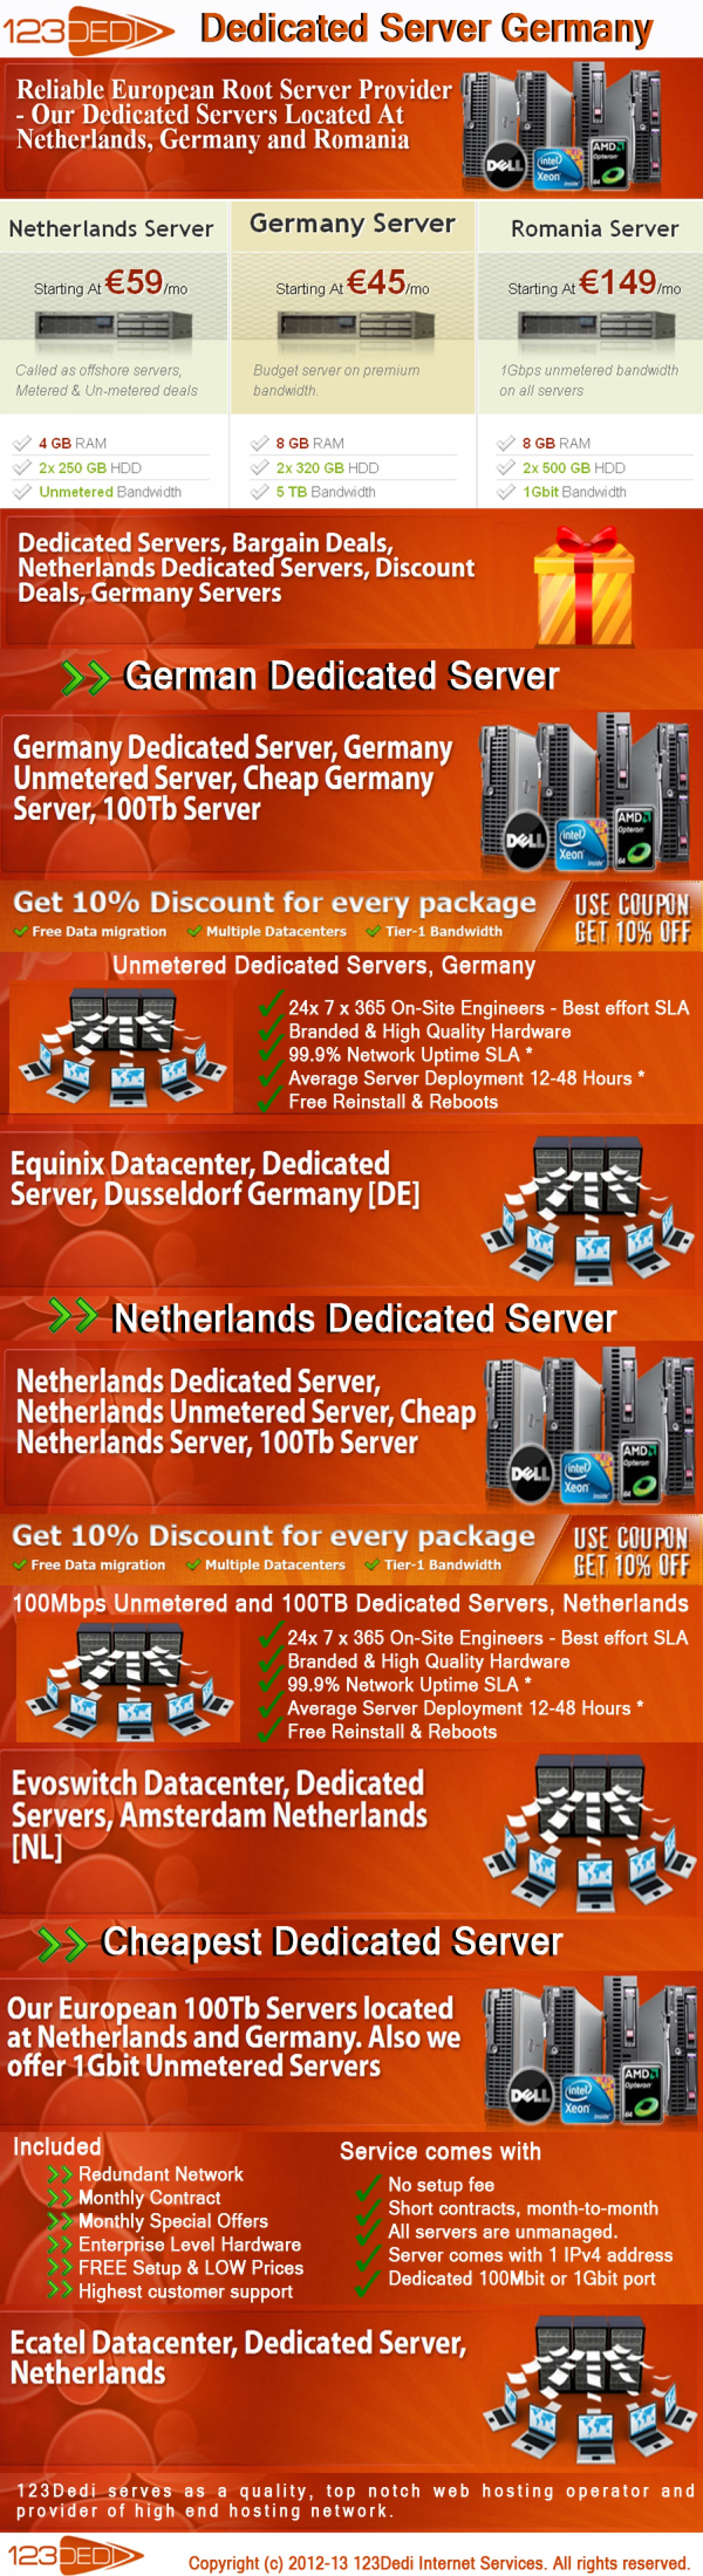 13. Dedicated server Germany